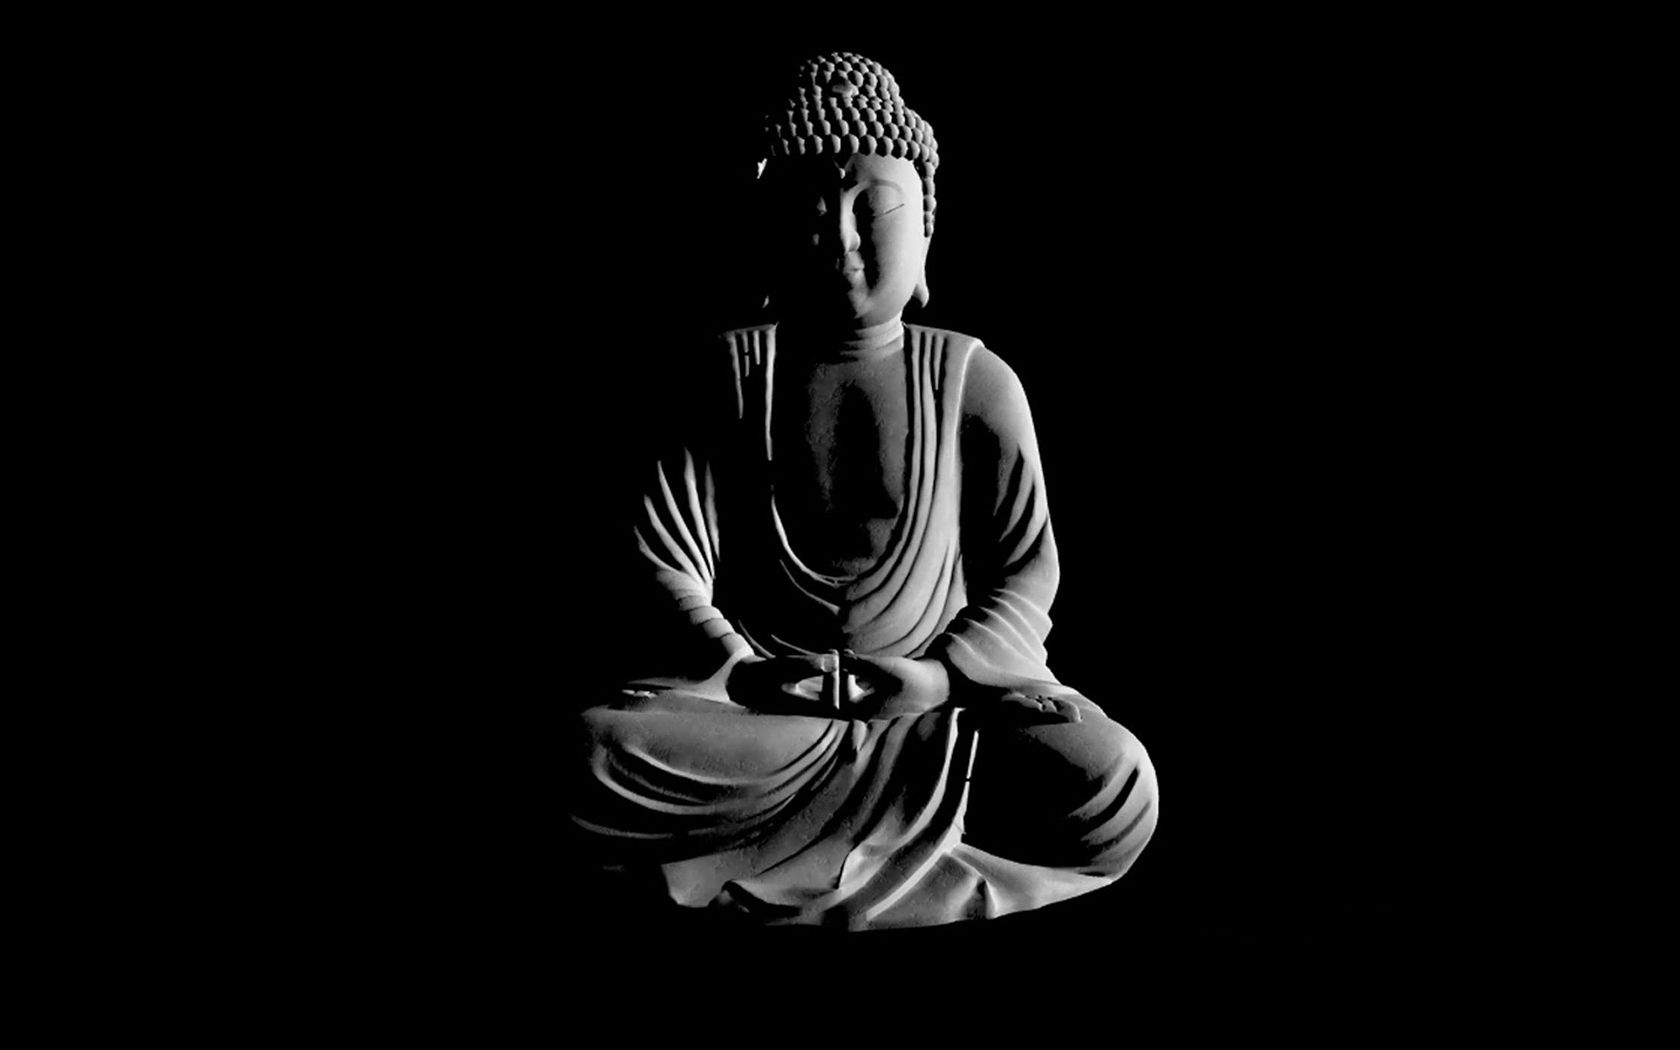 1680x1050 Buddhism Wallpaper and Background Image | 1680x1050 | ID:176849